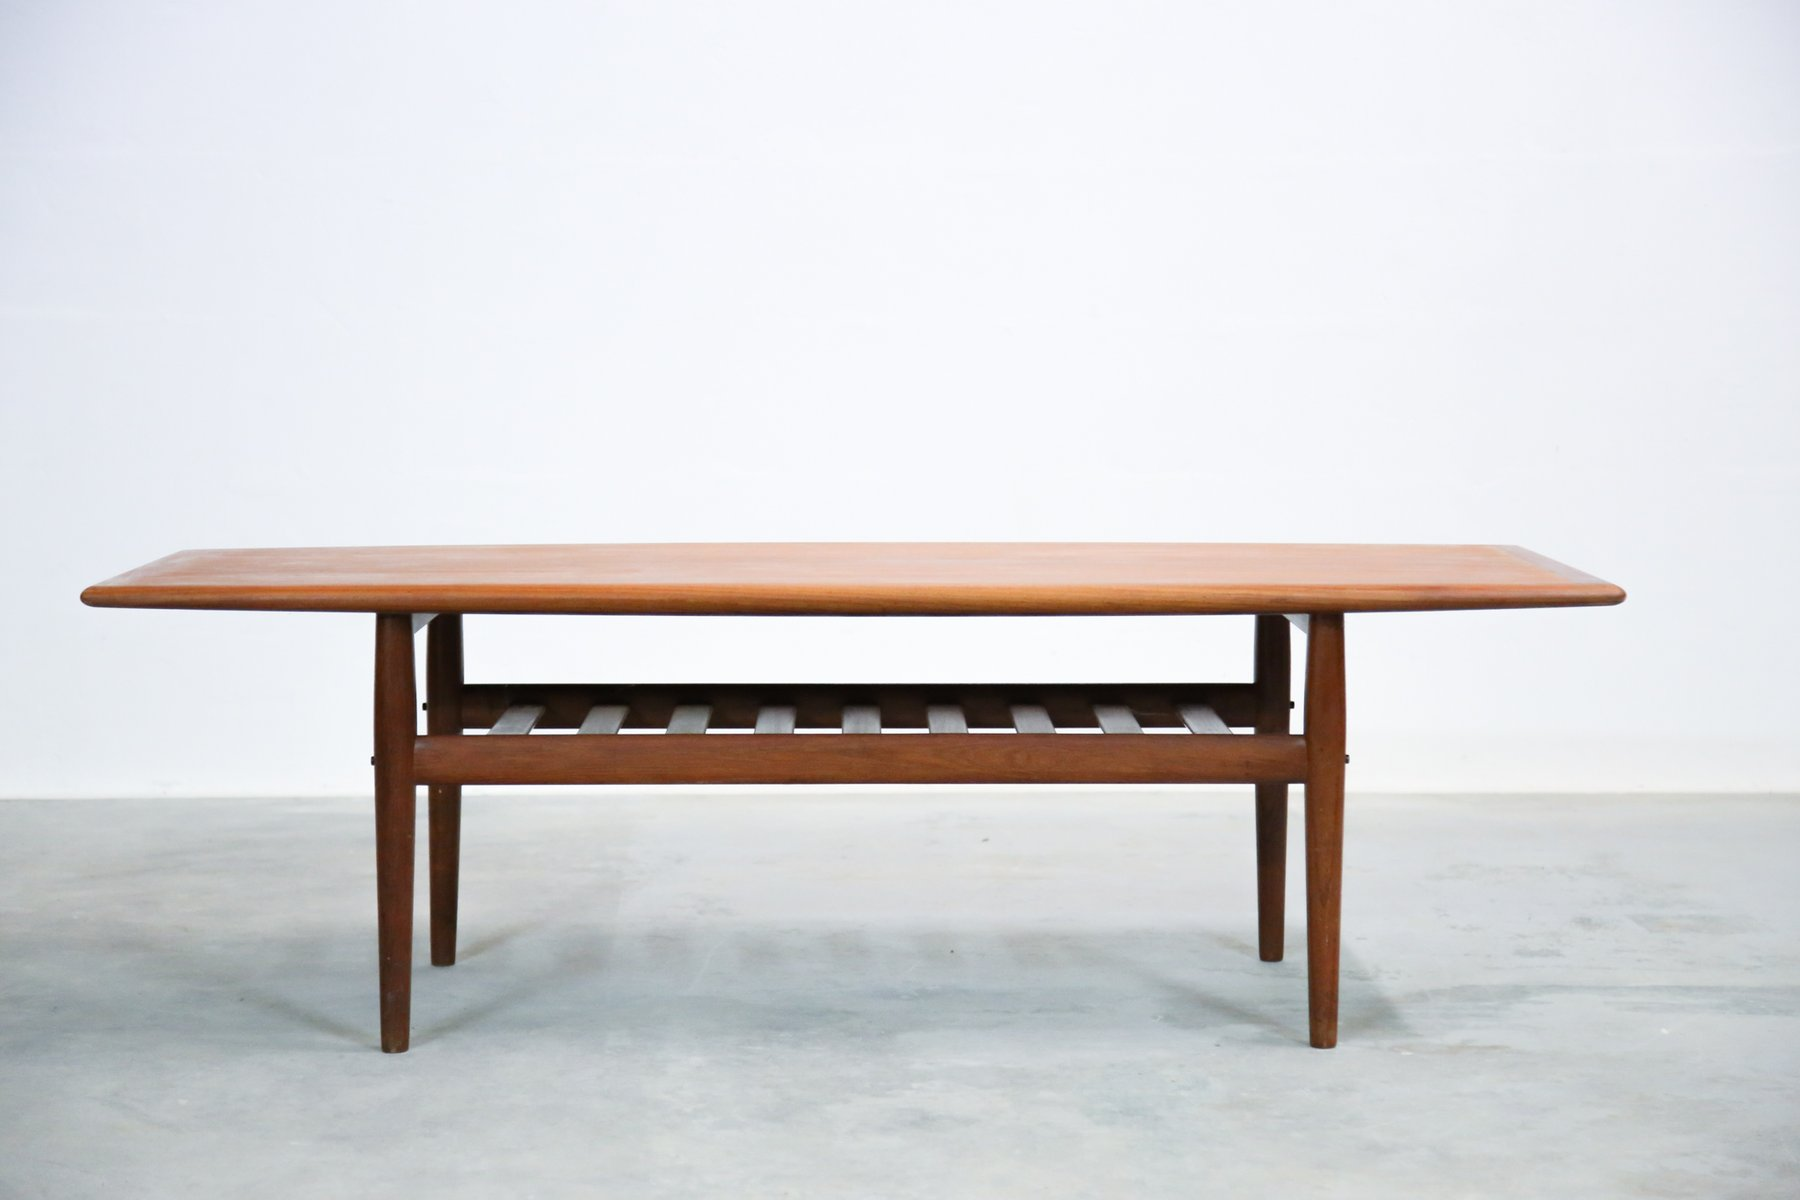 Danish Teak Coffee Table by Grete Jalk for Glostrup for sale at Pamono